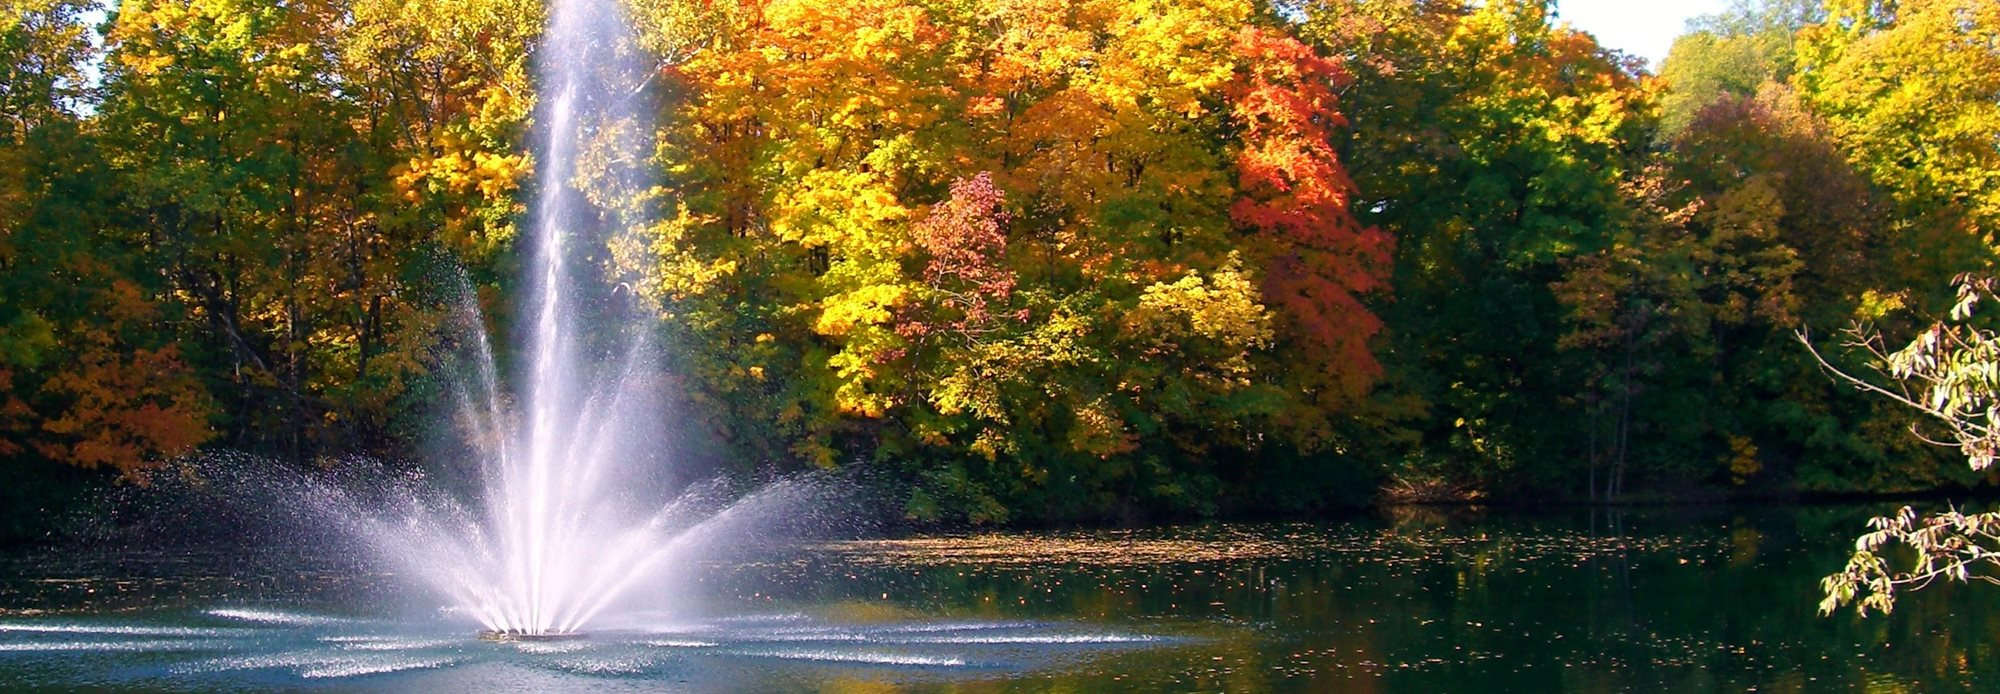 Fountain_Fall